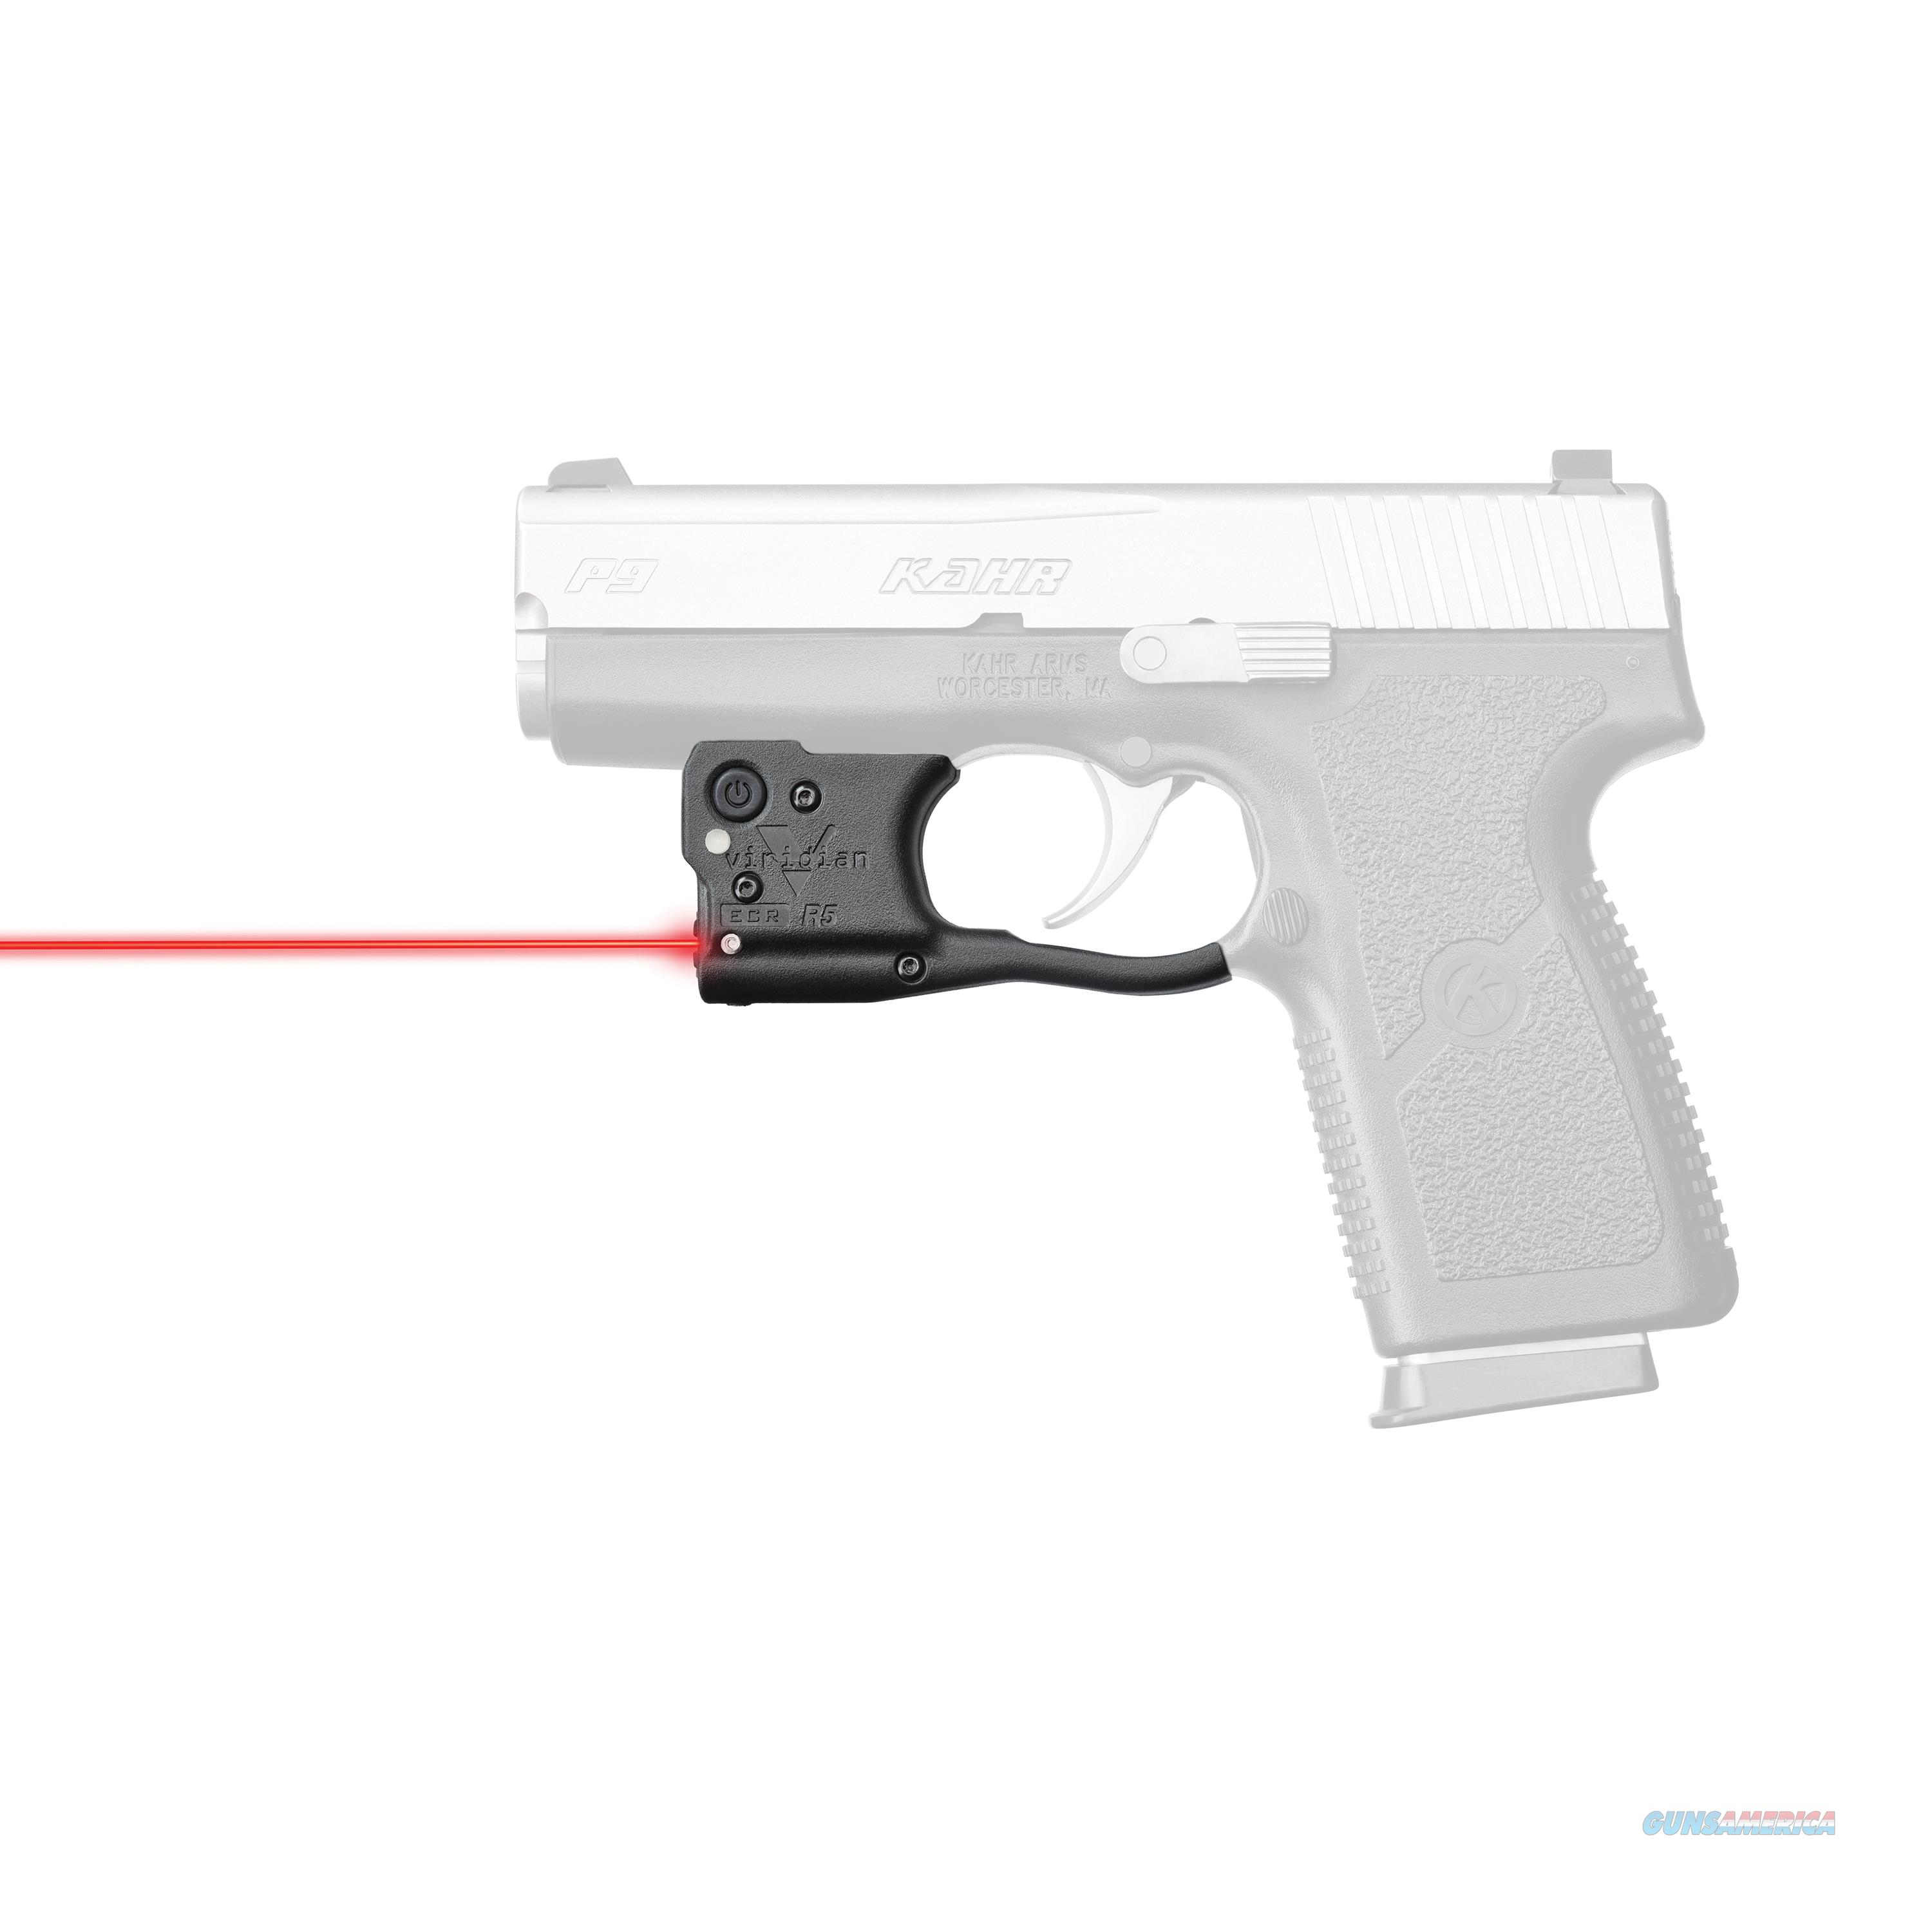 Viridian Reactor 5 Gen Ii Red Laser 9200014  Non-Guns > Iron/Metal/Peep Sights